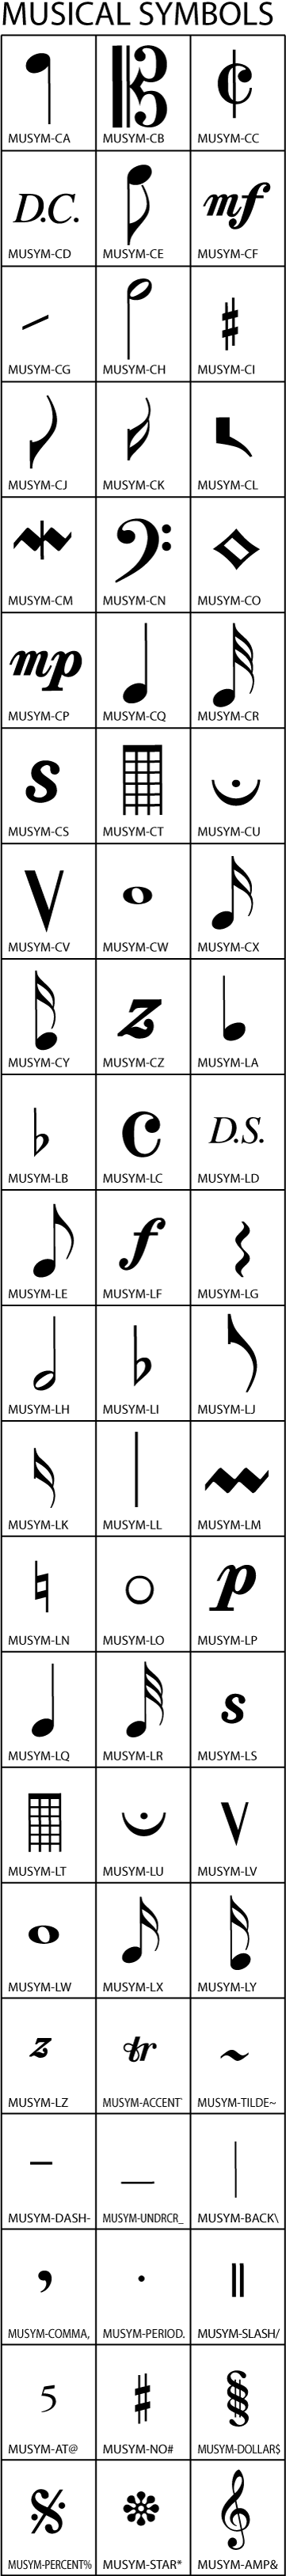 Music symbols clip art gallery infinity stamps inc music symbols clip art gallery biocorpaavc Image collections